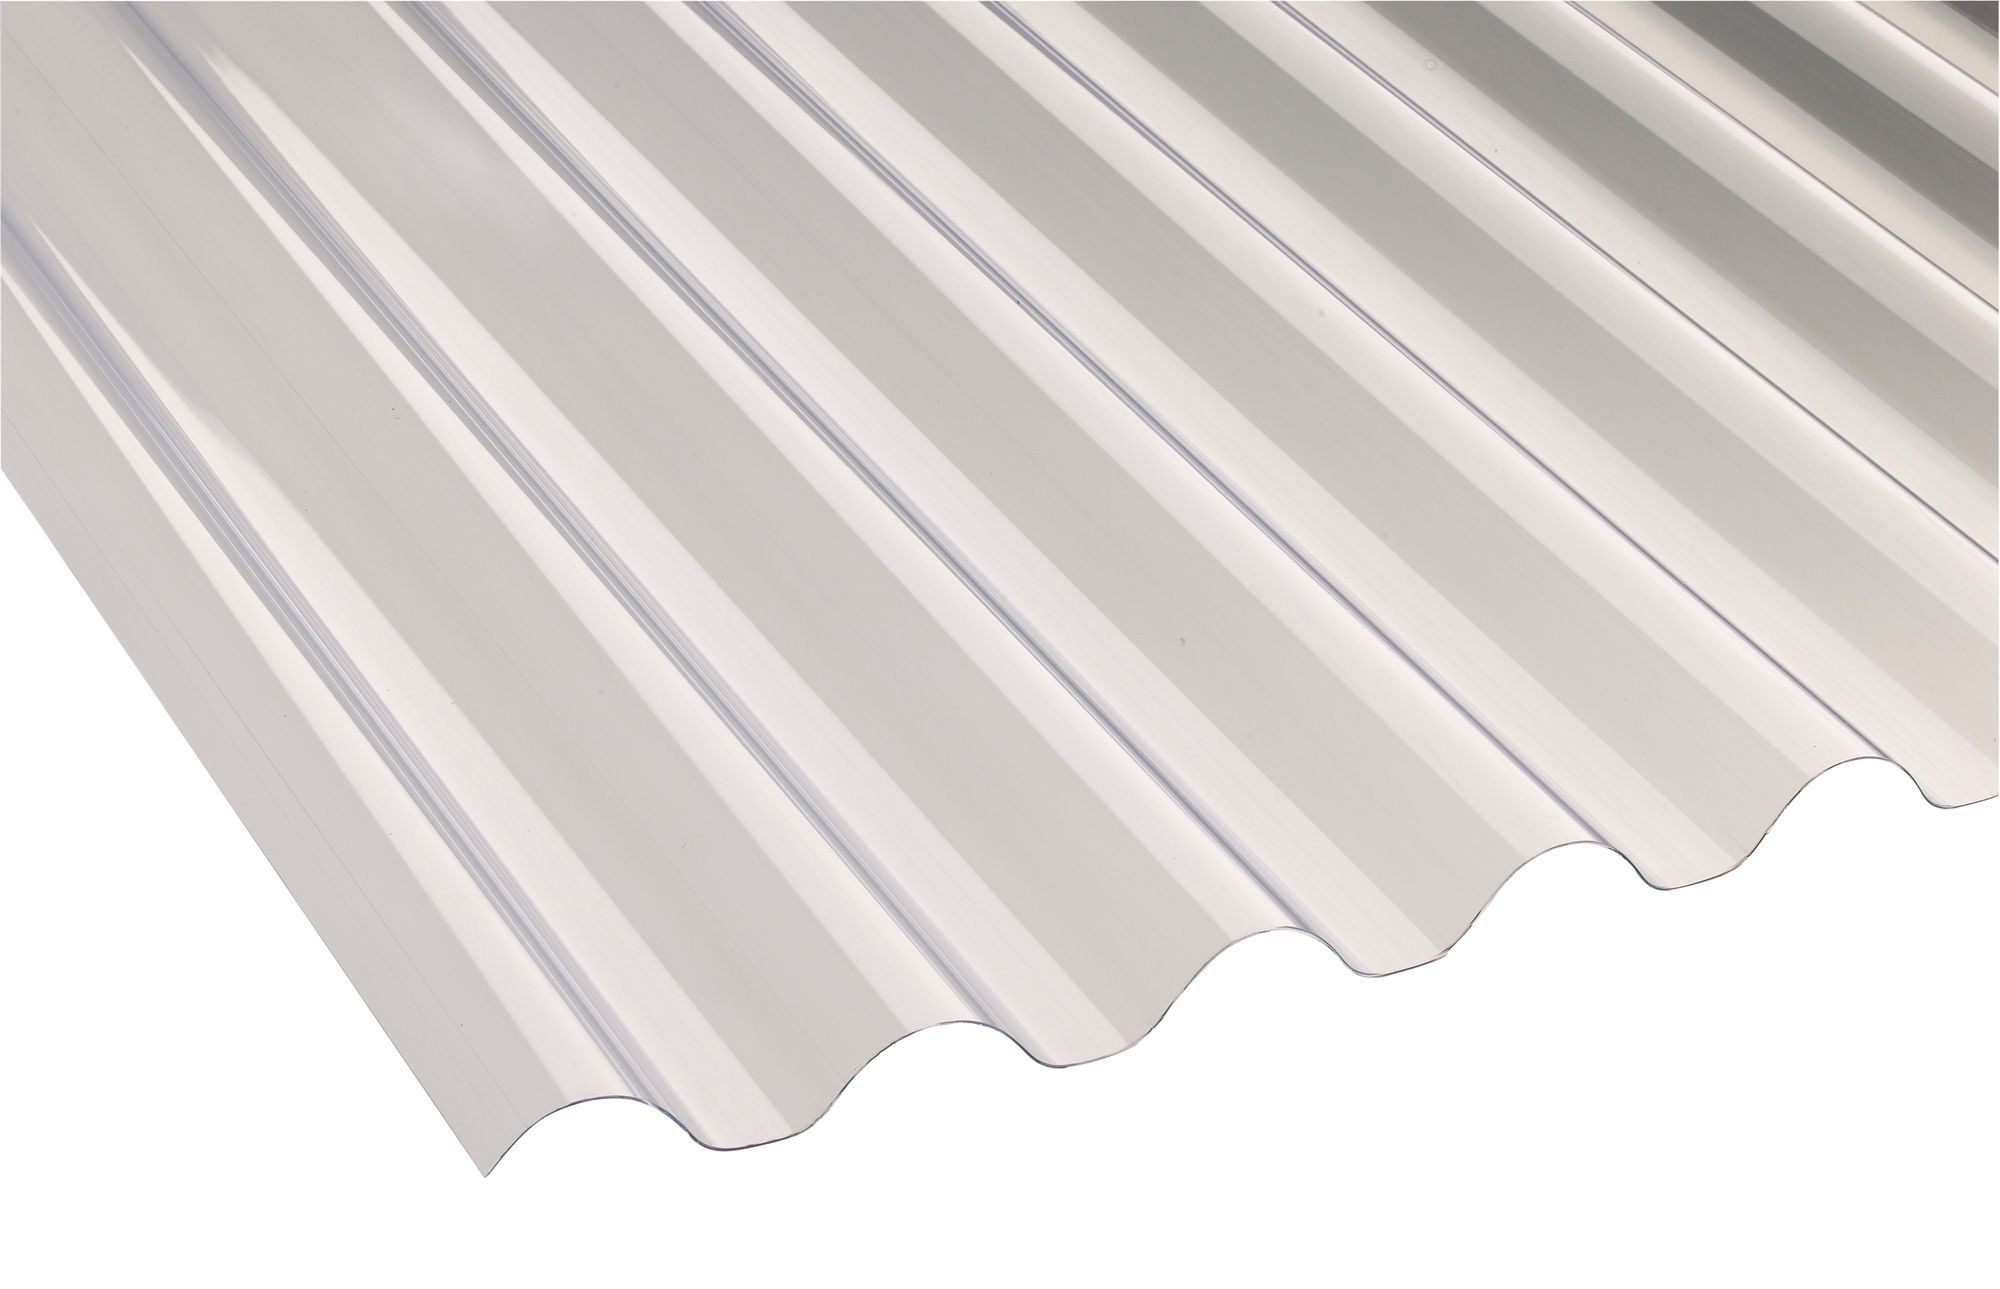 Translucent Pvc Roofing Sheet 1 8m X 660mm Departments